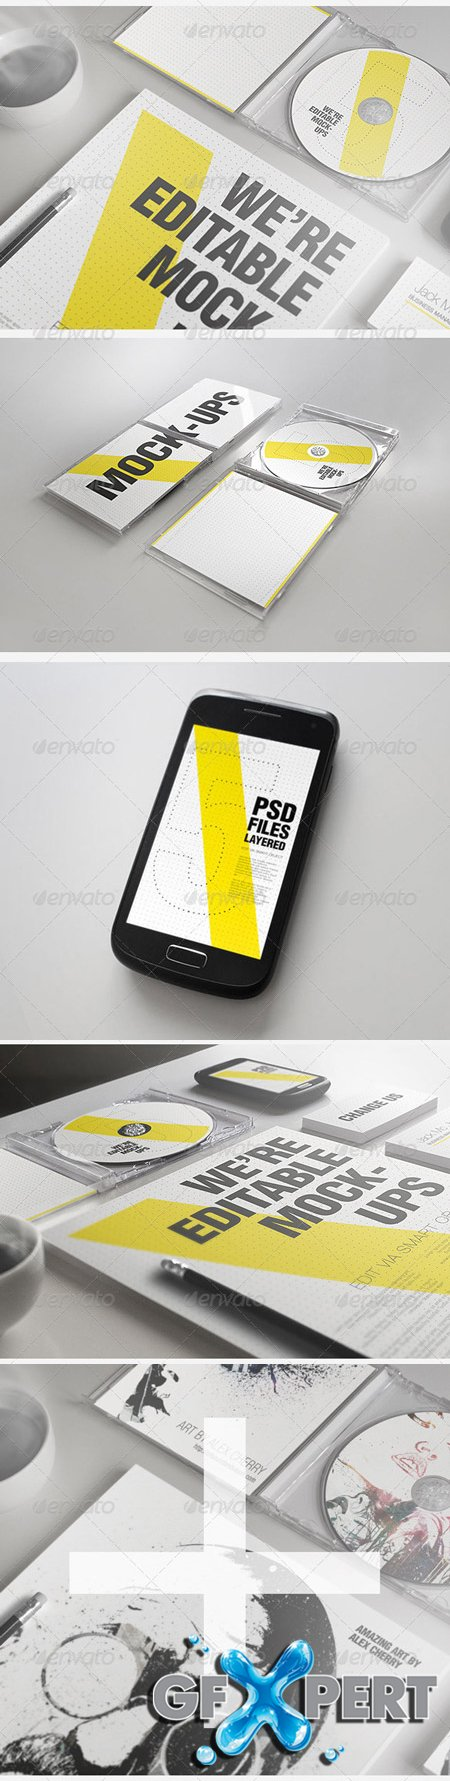 GraphicRiver Realistic Stationery Mockups Set 2- Corporate ID